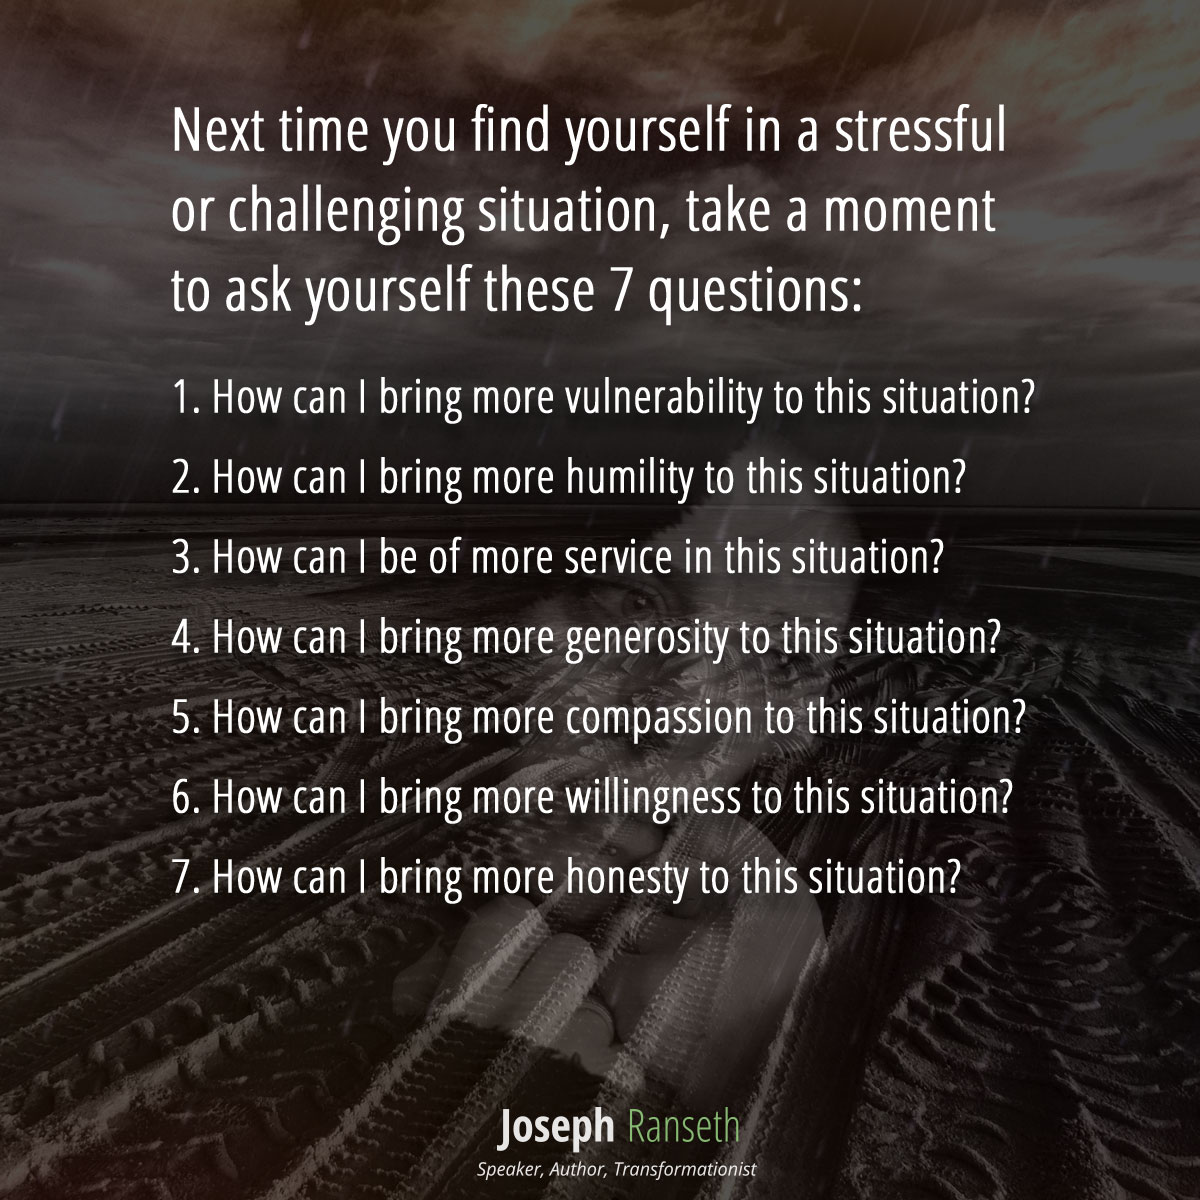 Next time you find yourself in a stressful or challenging situation, take a moment to ask yourself these 7 questions